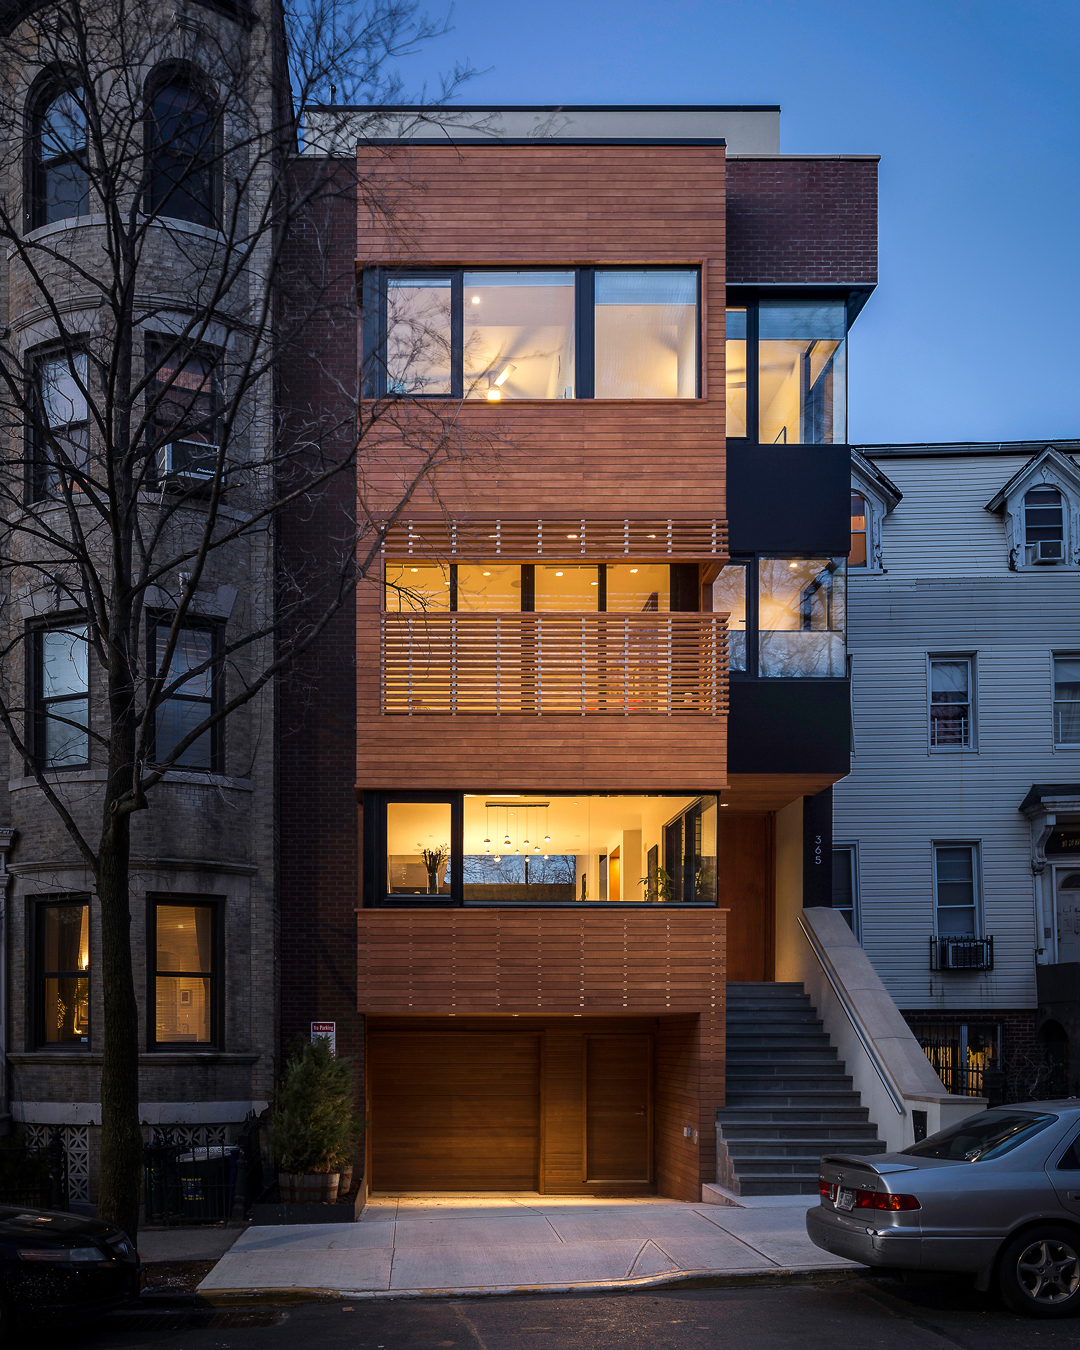 Park Slope Townhouse at Twilight